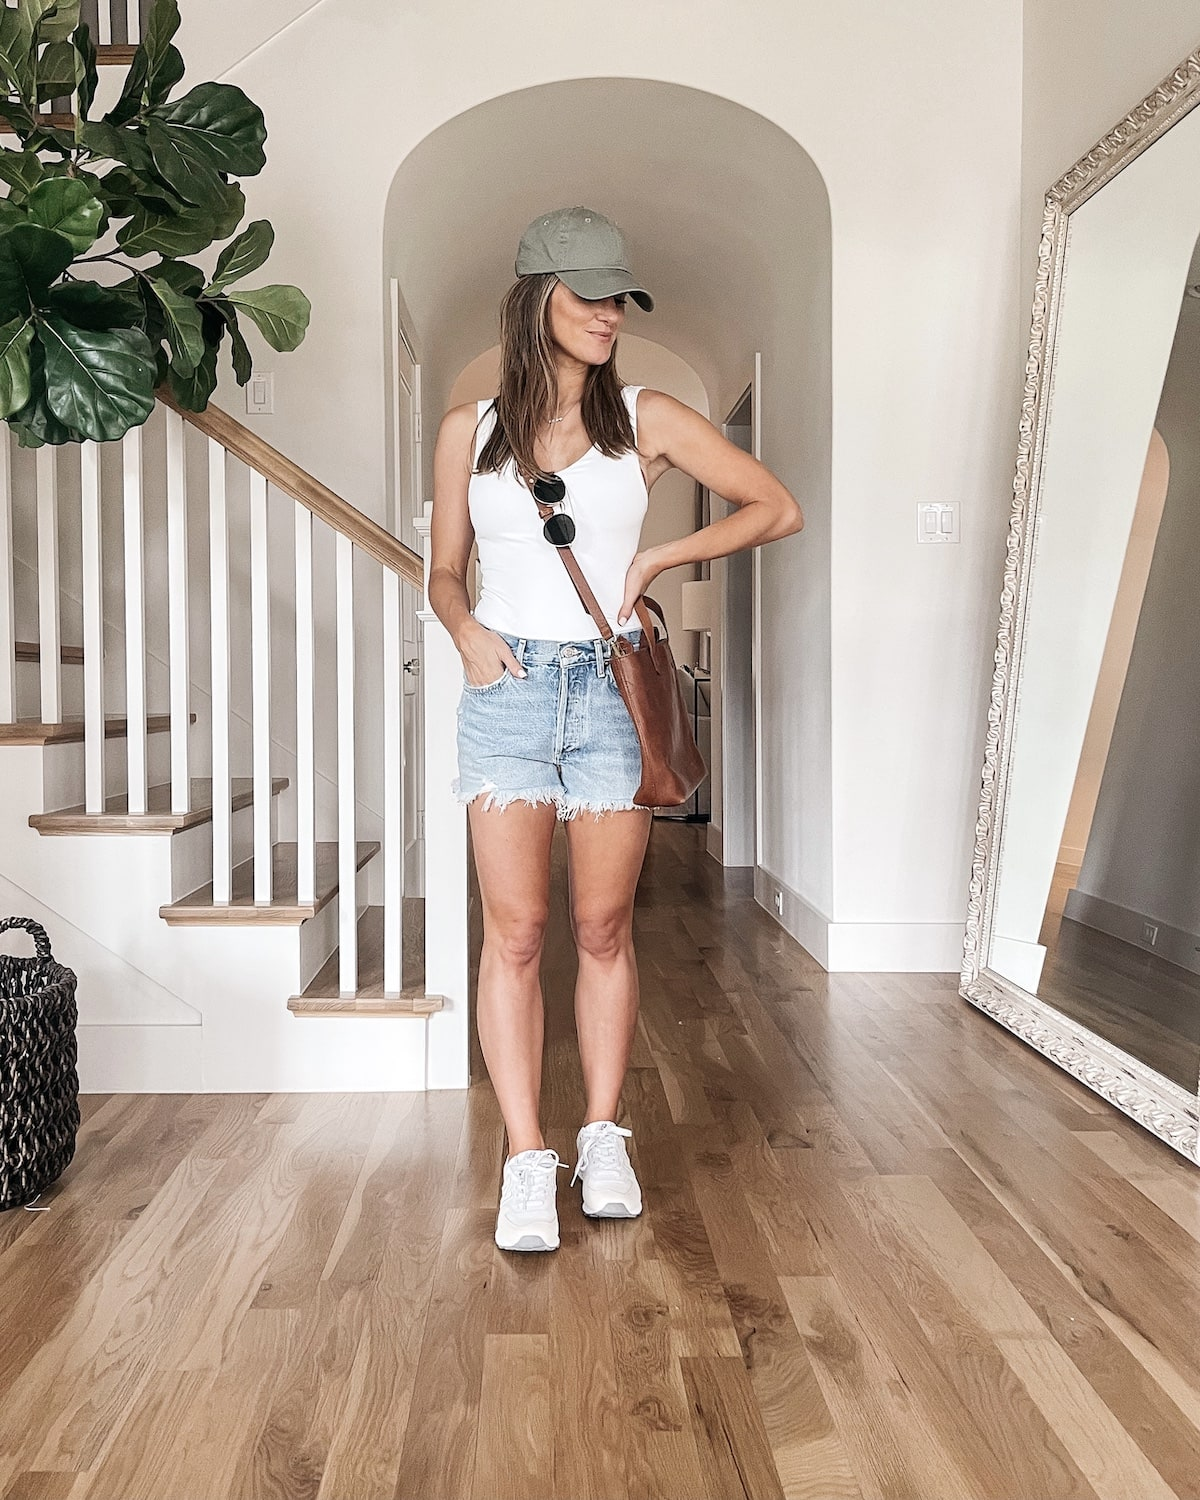 brighton butler wearing white body suit with jean shorts